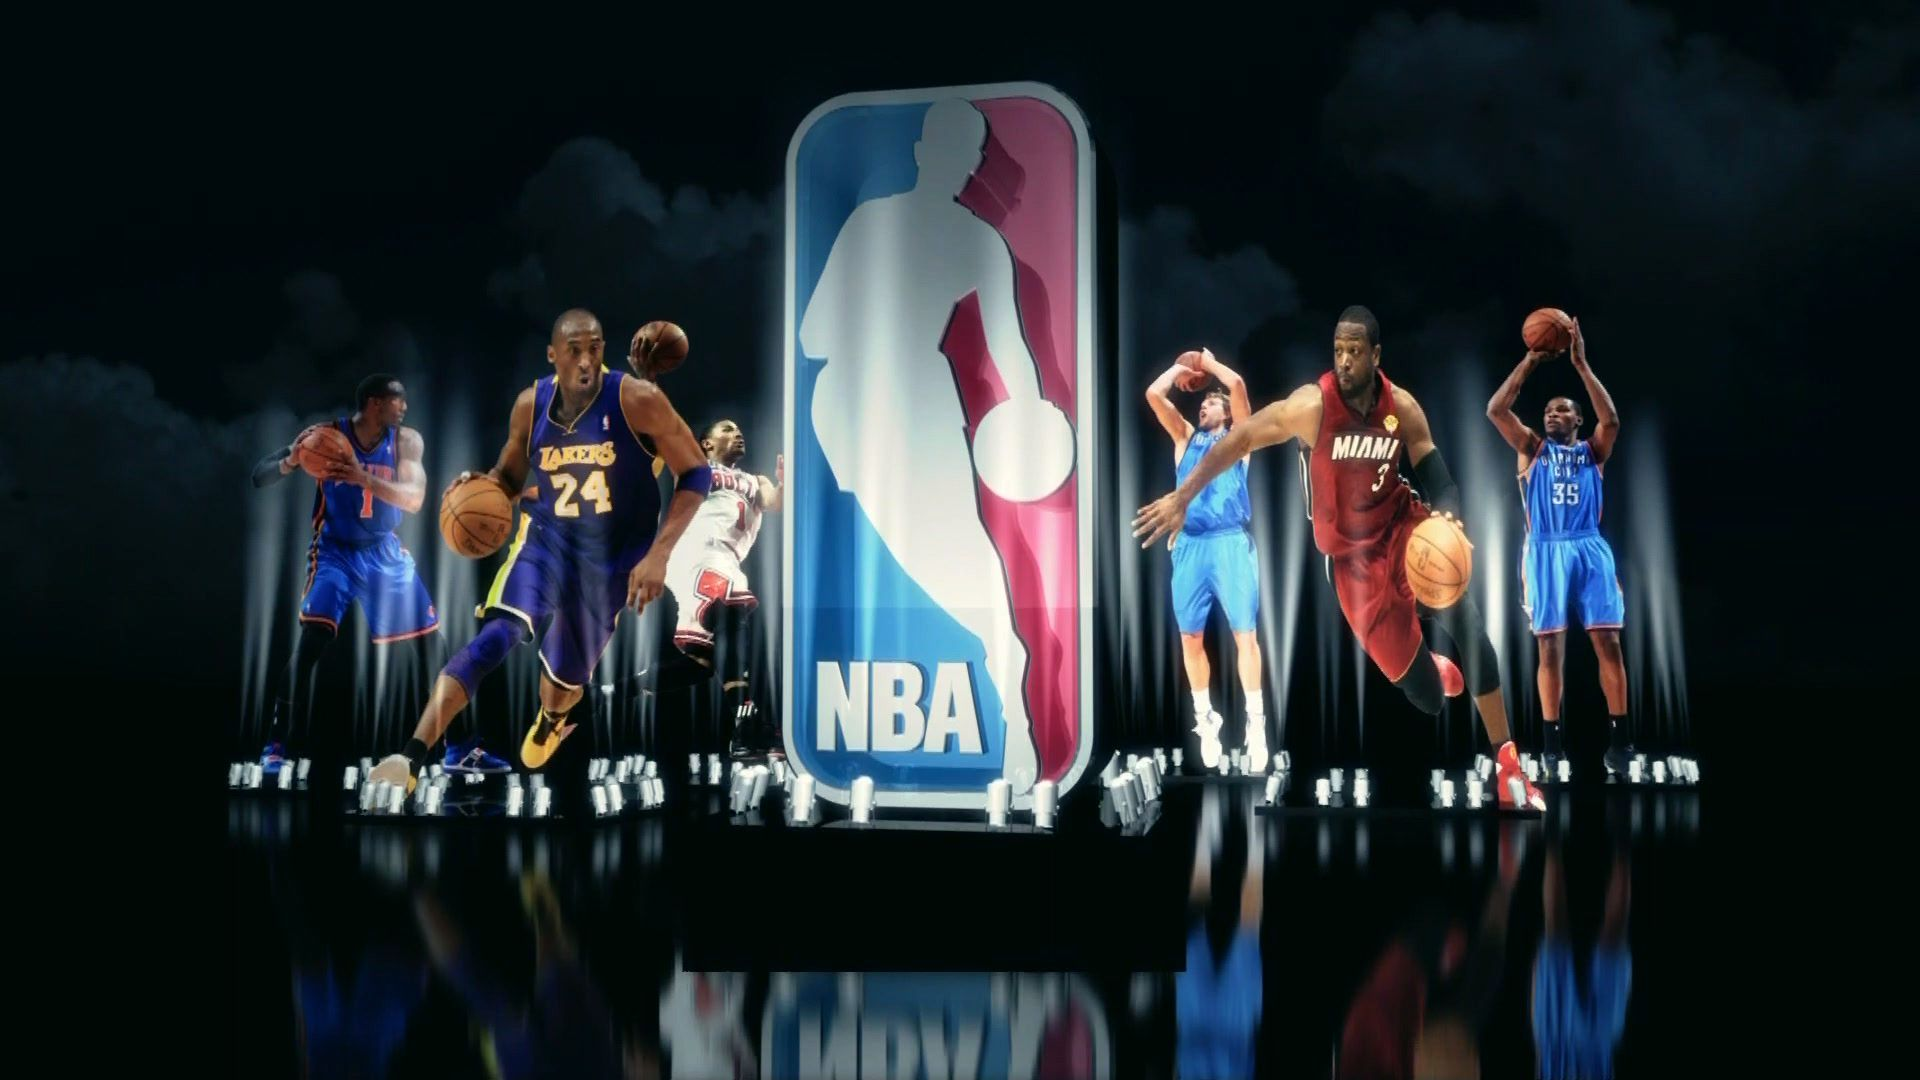 Top Free Dope Nba Backgrounds: すべての花の画像: トップ100コービー 壁紙 Pc